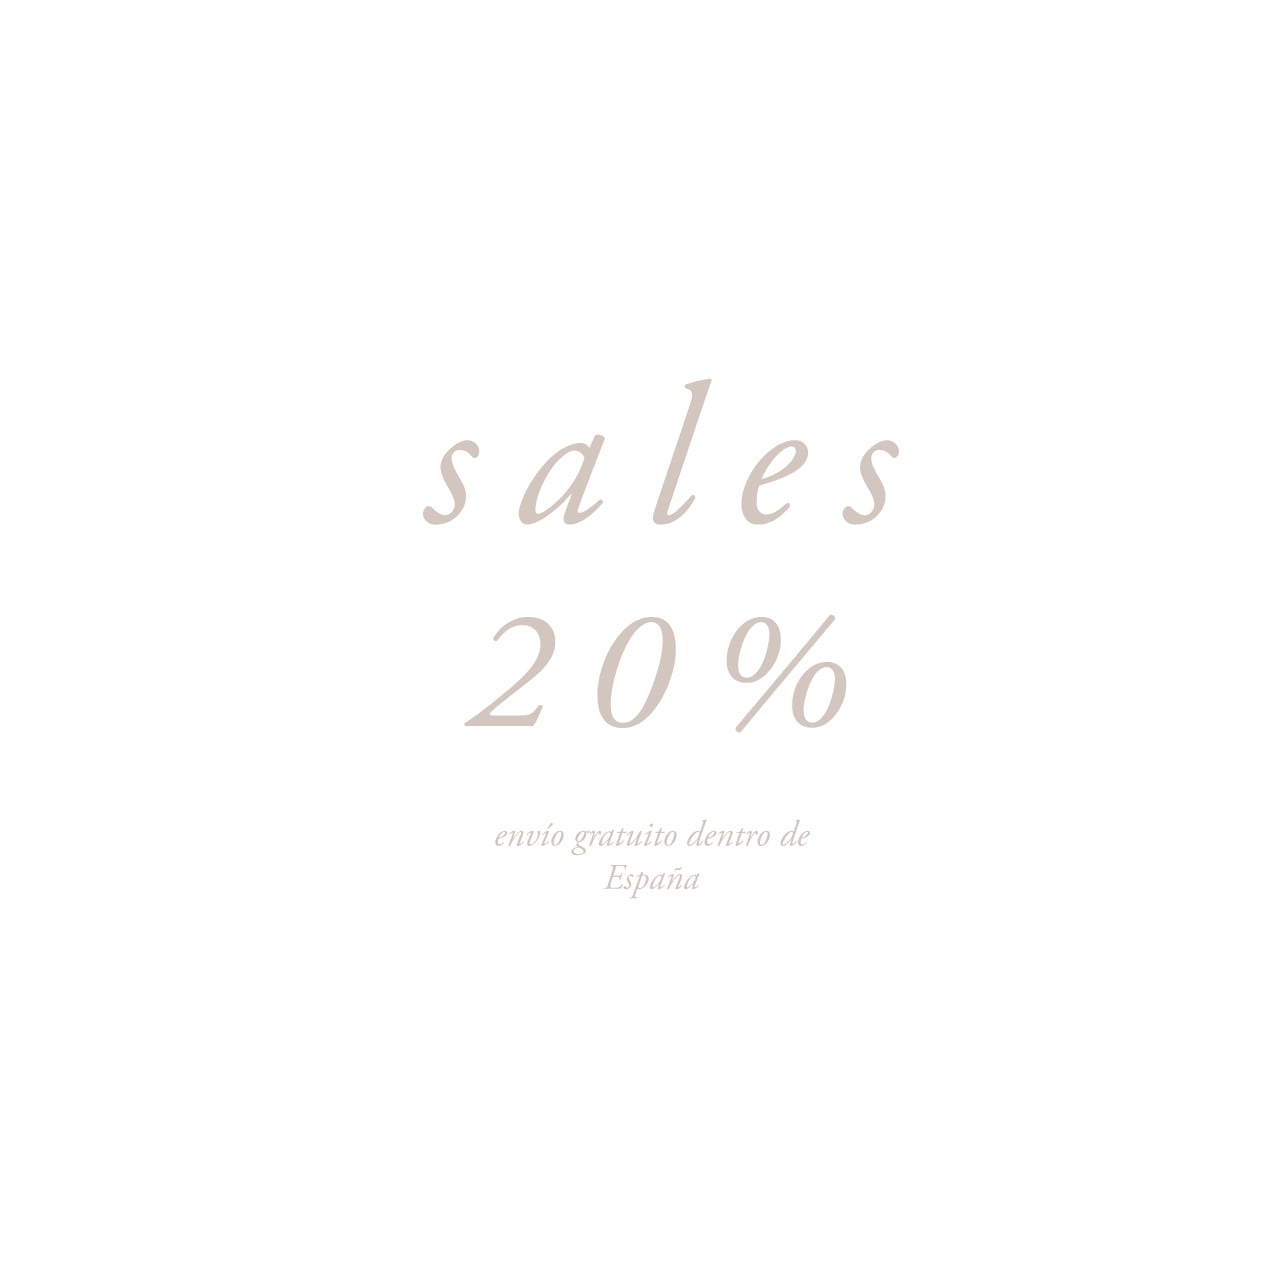 -20% off in all the collections in our online shop!! Use the code: sales_16   http://www.mariaramirez.net/shop/